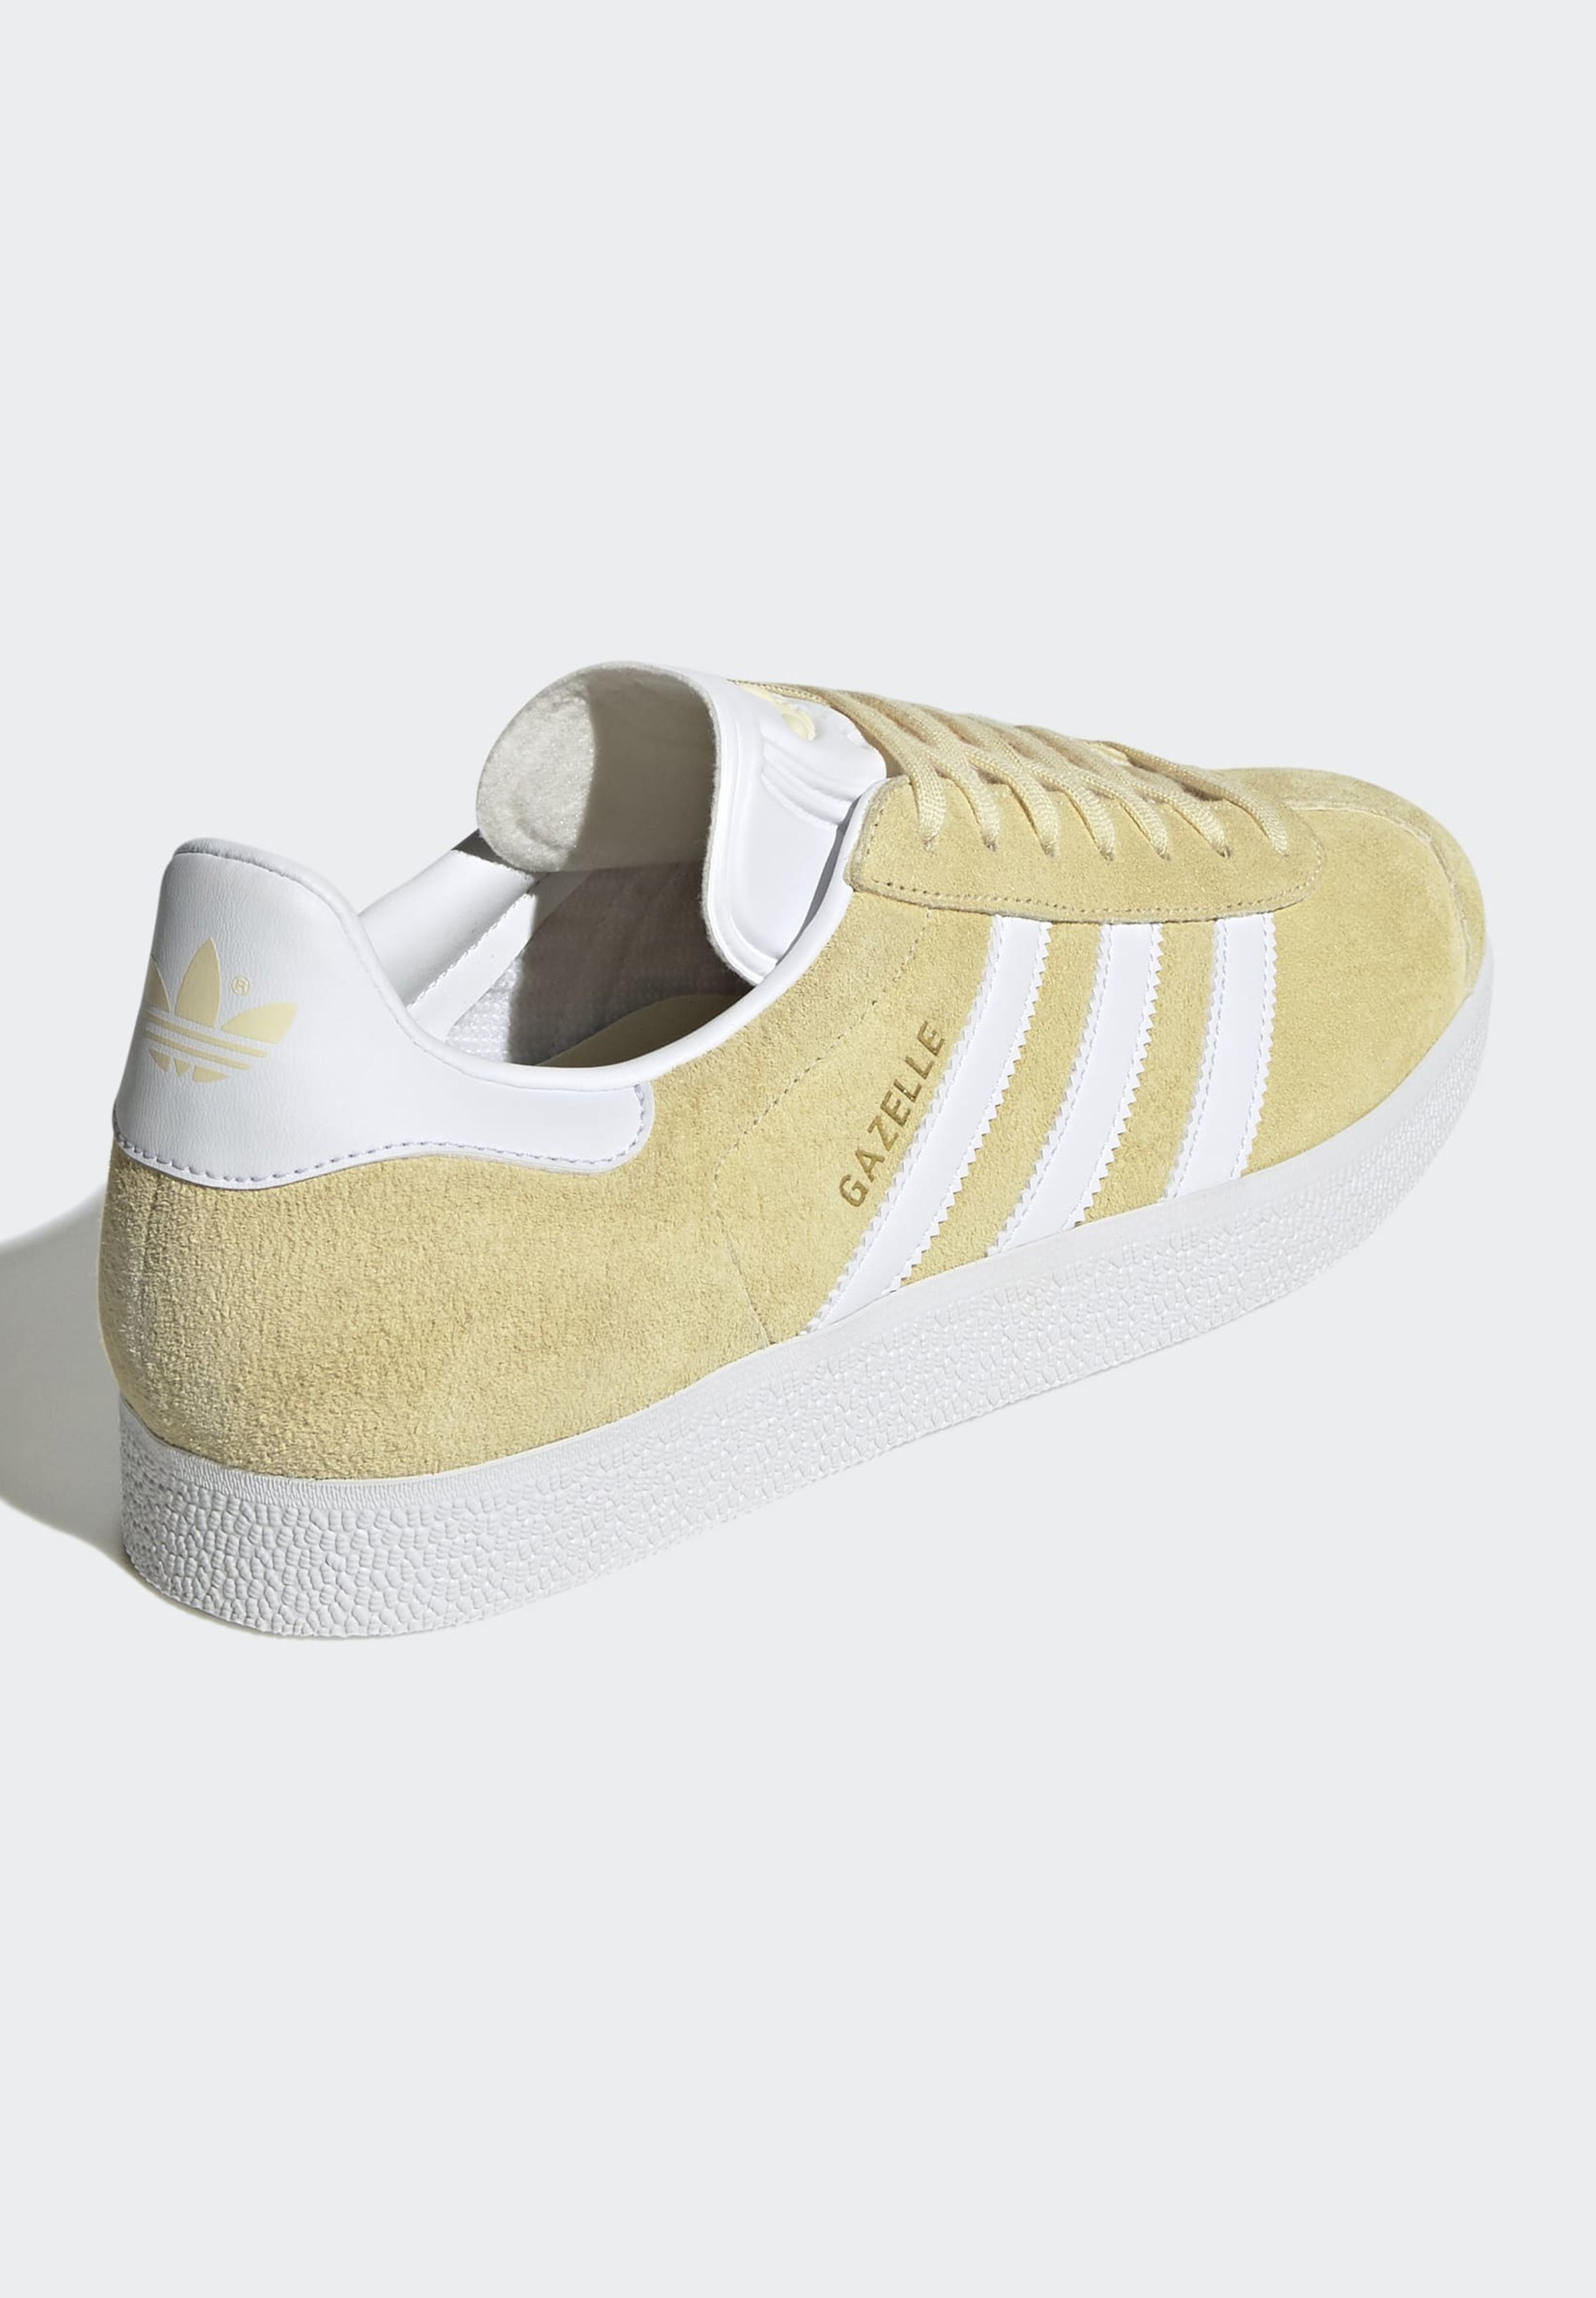 Adidas Originals Gazelle Shoes - Sneakers Yellow